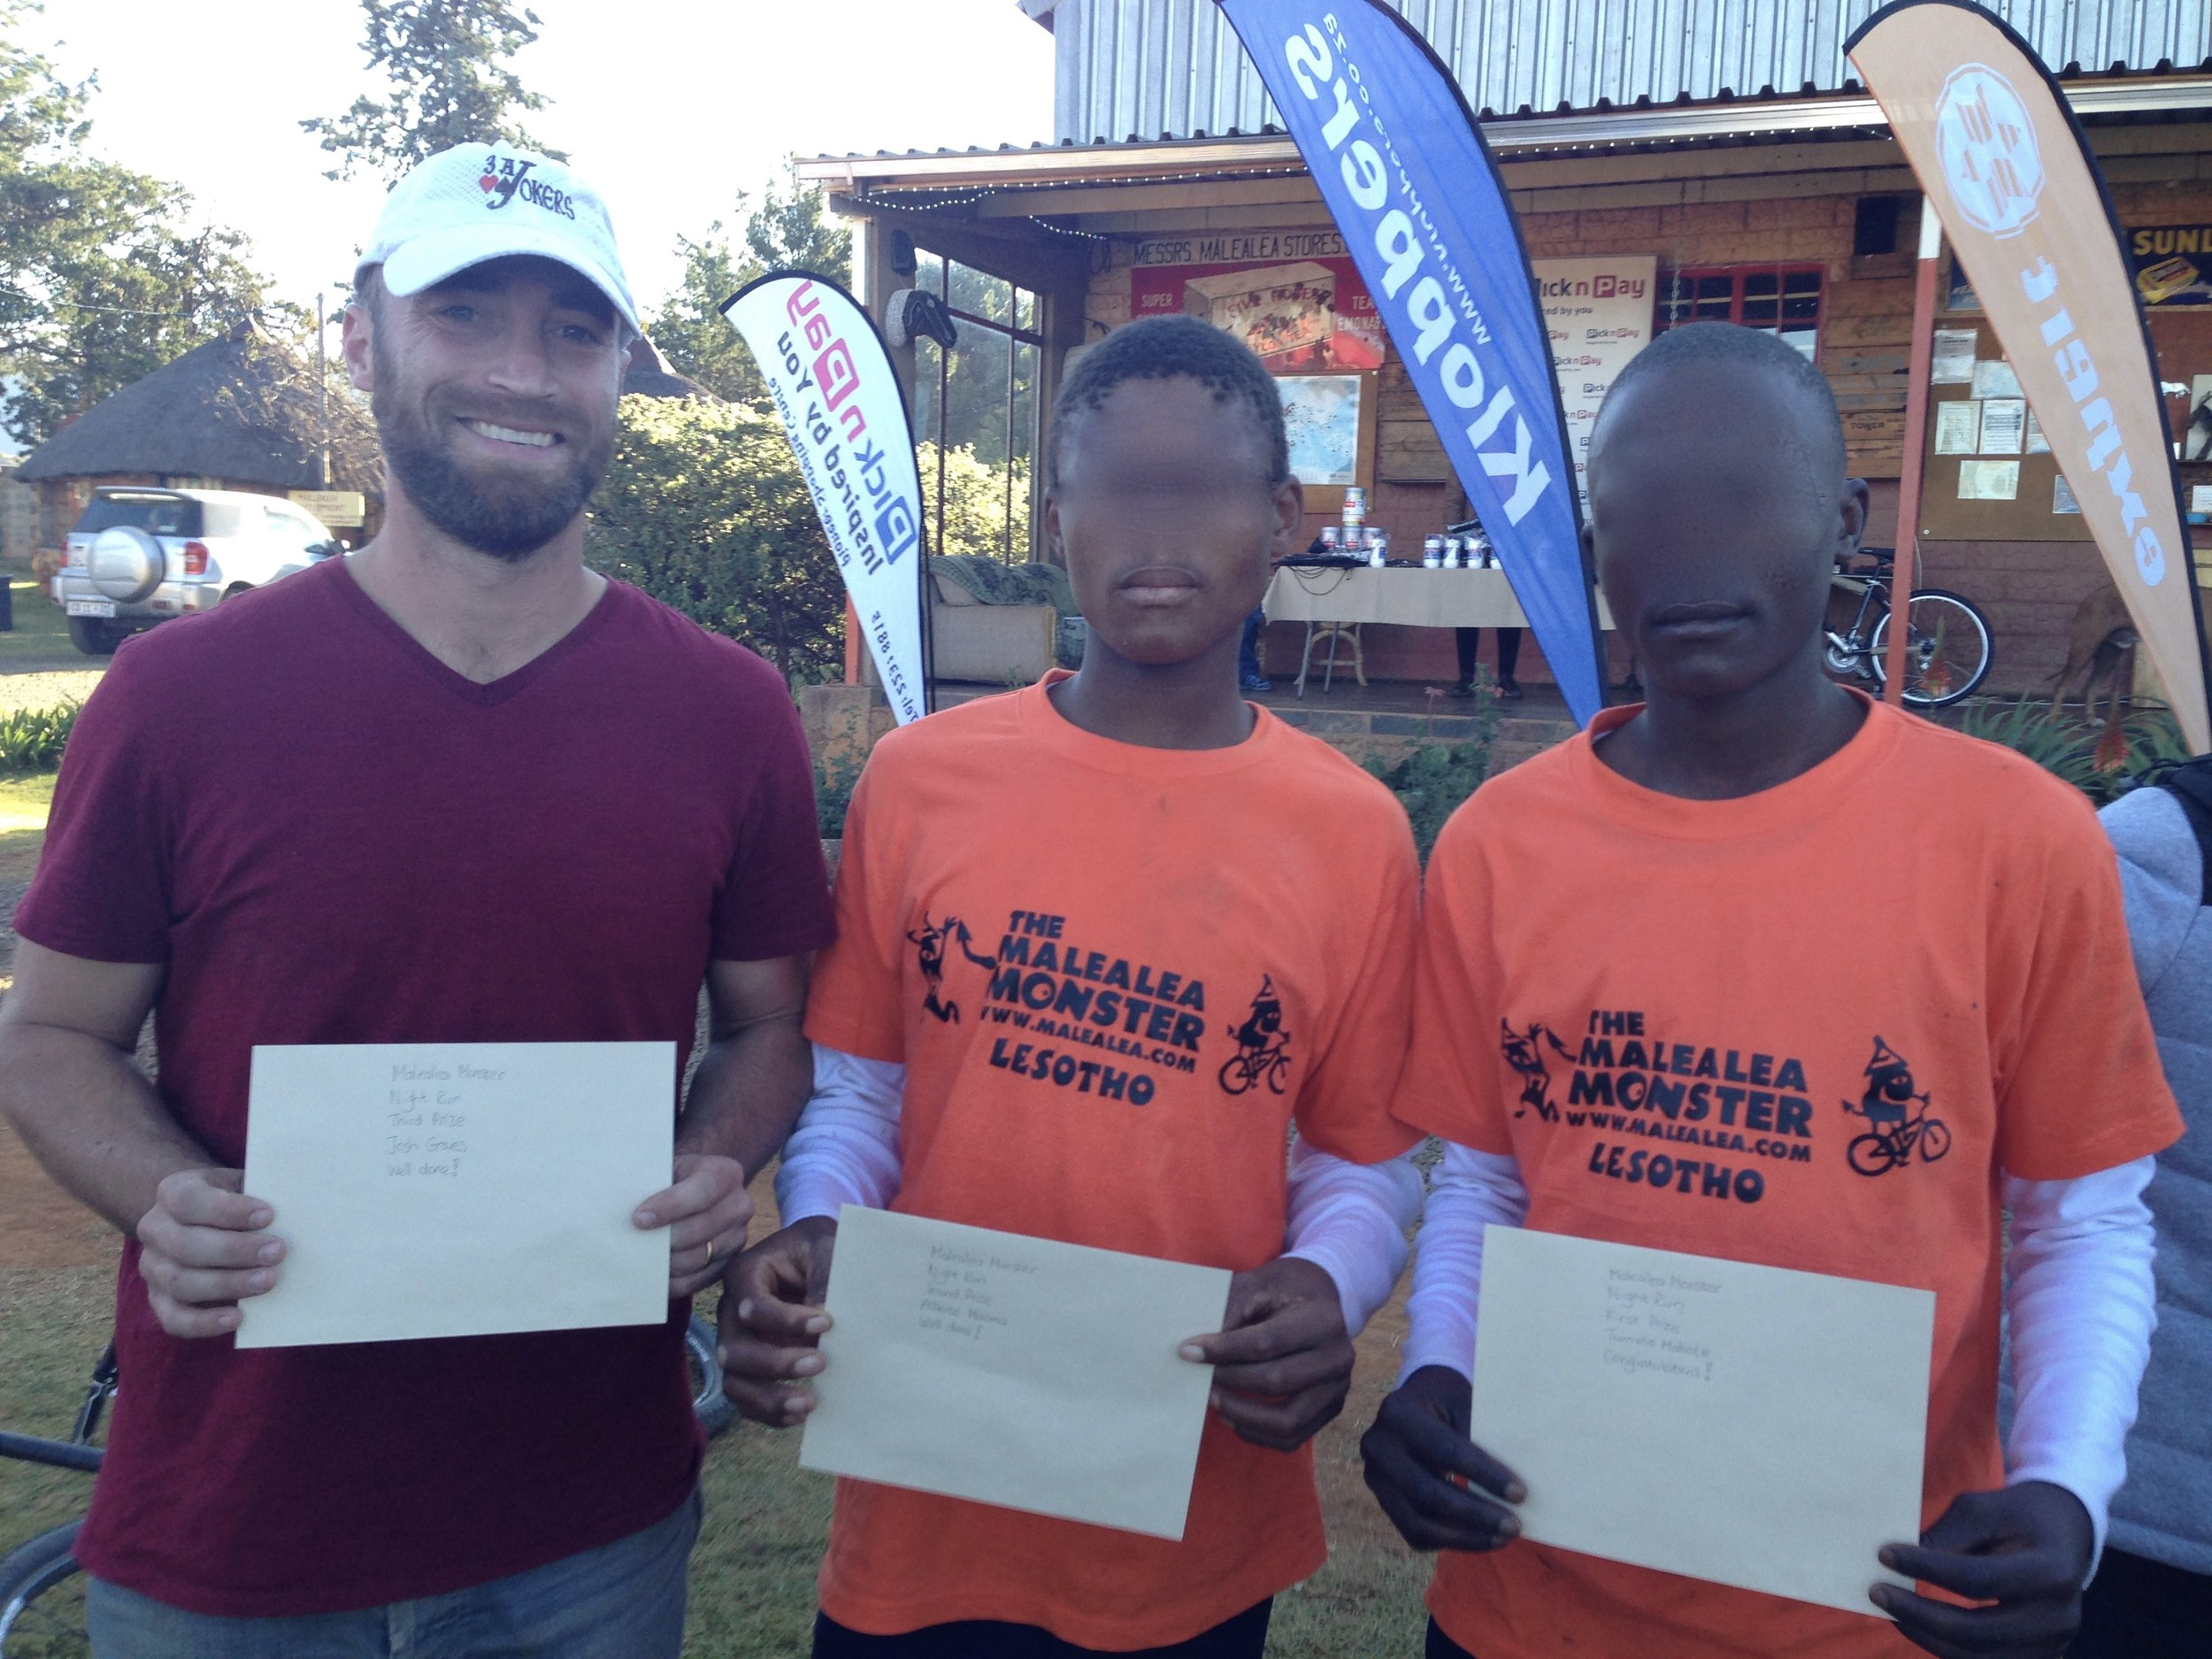 Podium Finish - Sepheo took out 1, 2 and 3 in the night trail run event